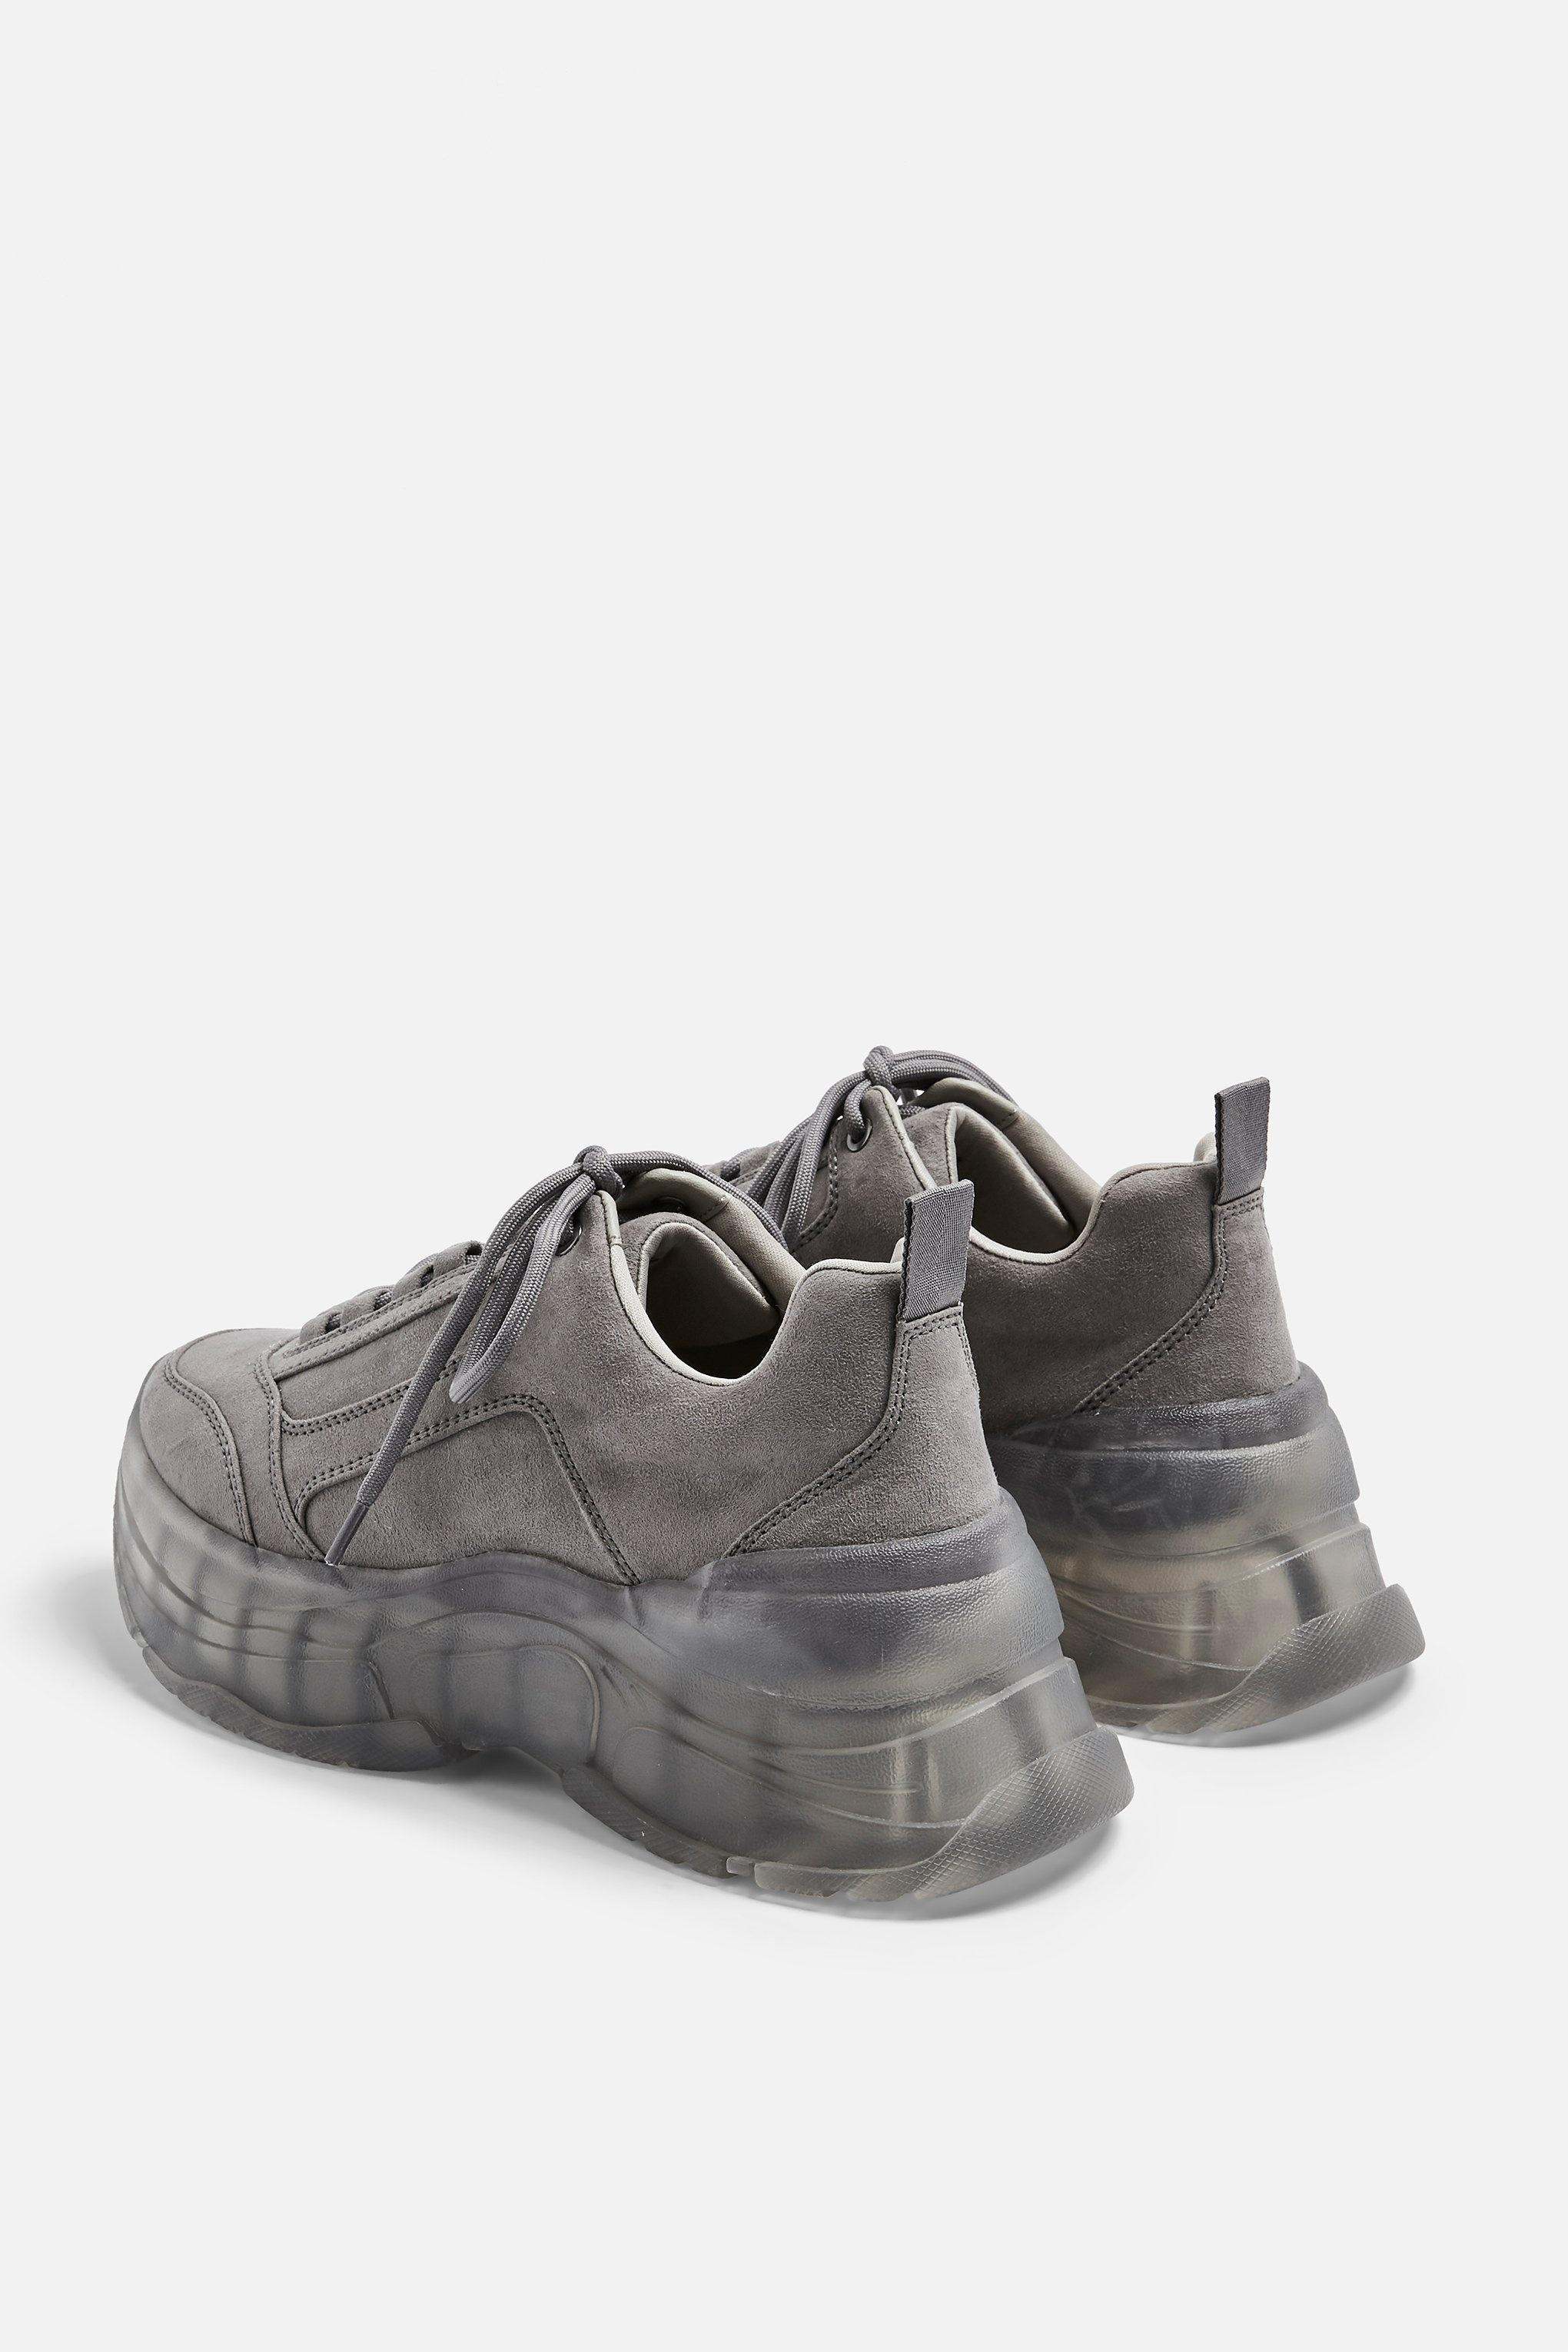 topshop grey trainers promo code for